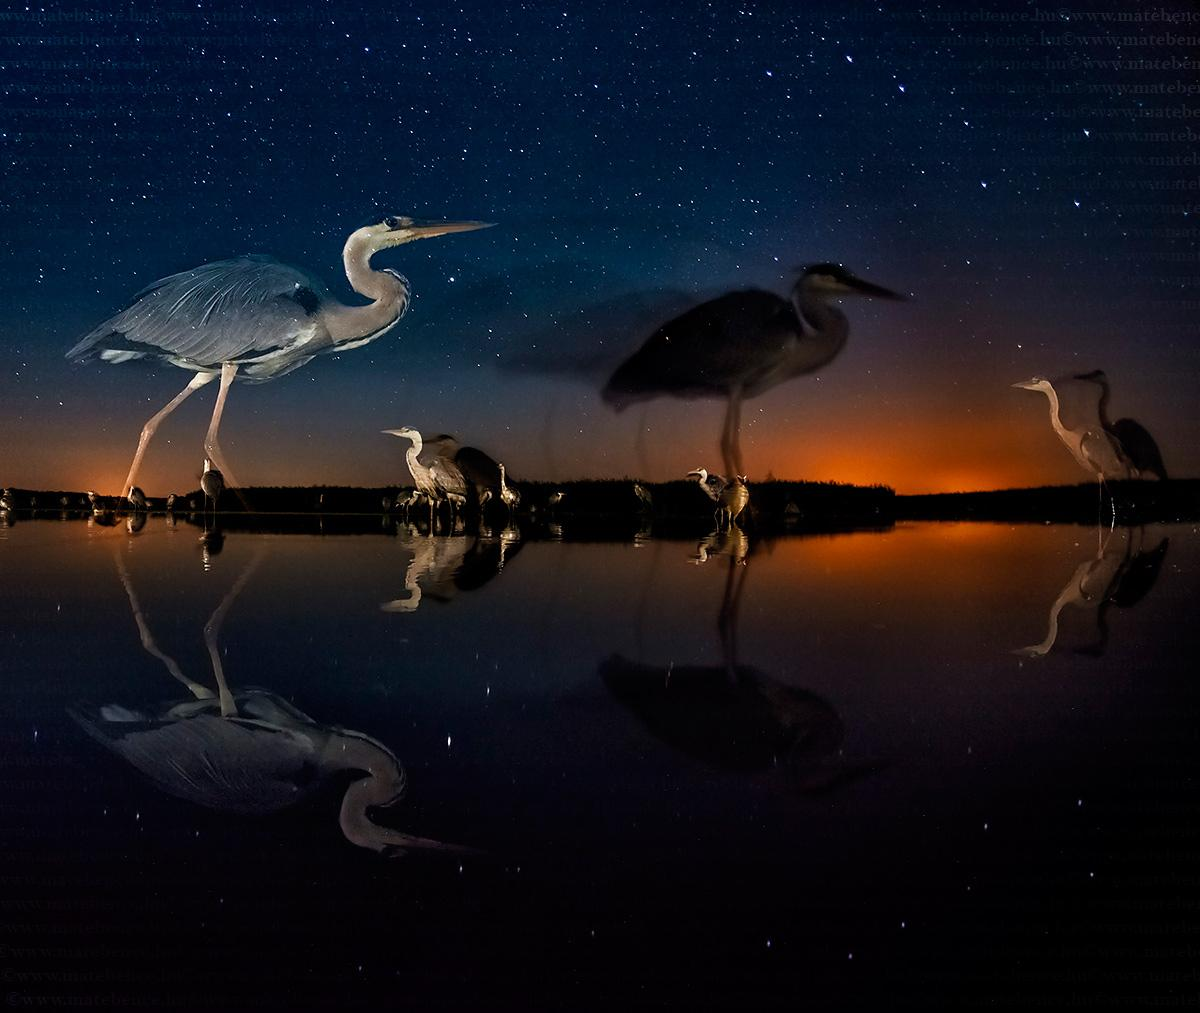 Hungarian Photographer Bence Máté Wins Wildlife Photography Competition